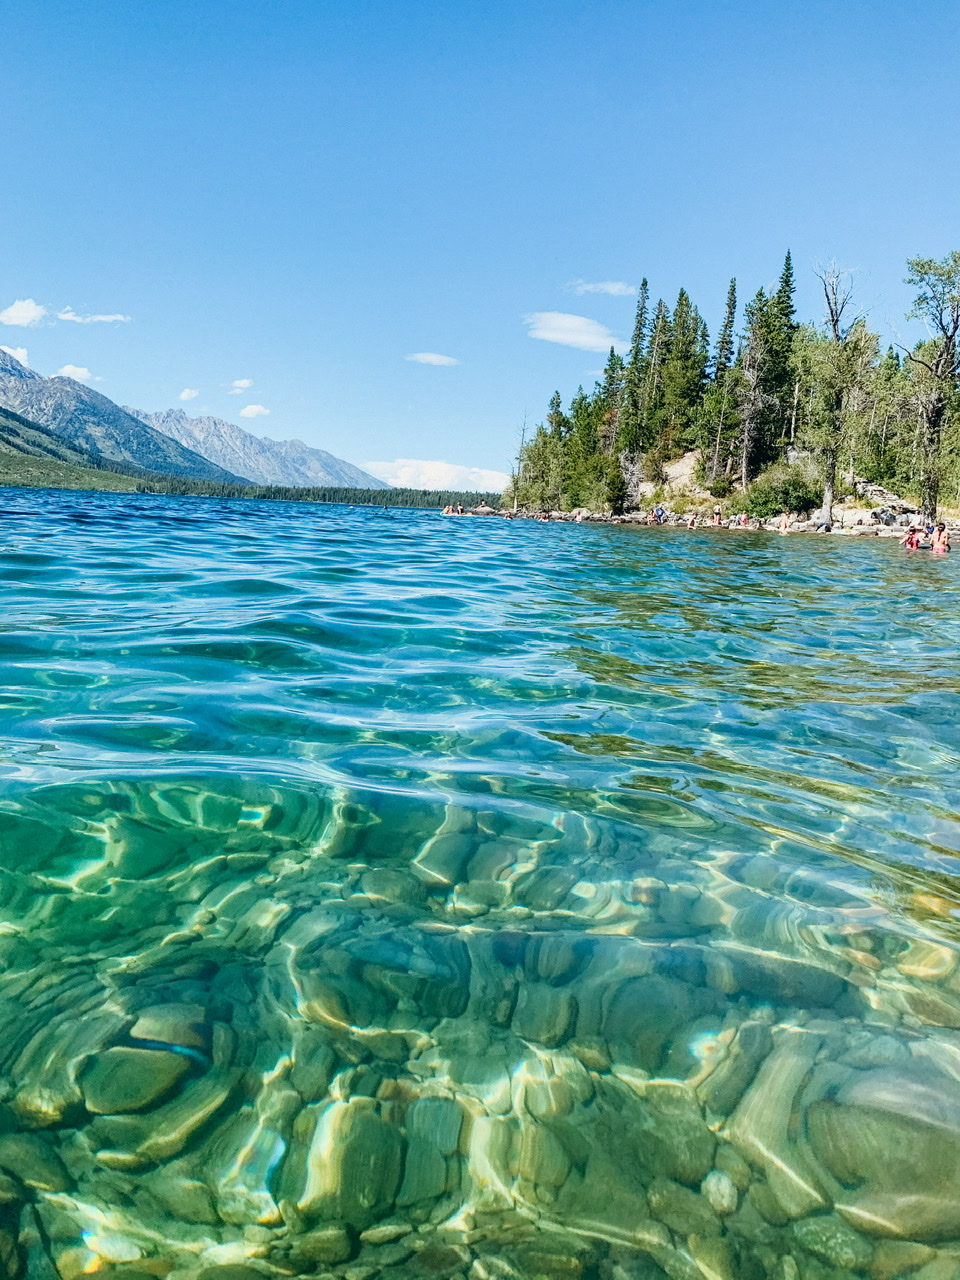 Crystal clear water while swimming in Jenny Lake in Teton National Park